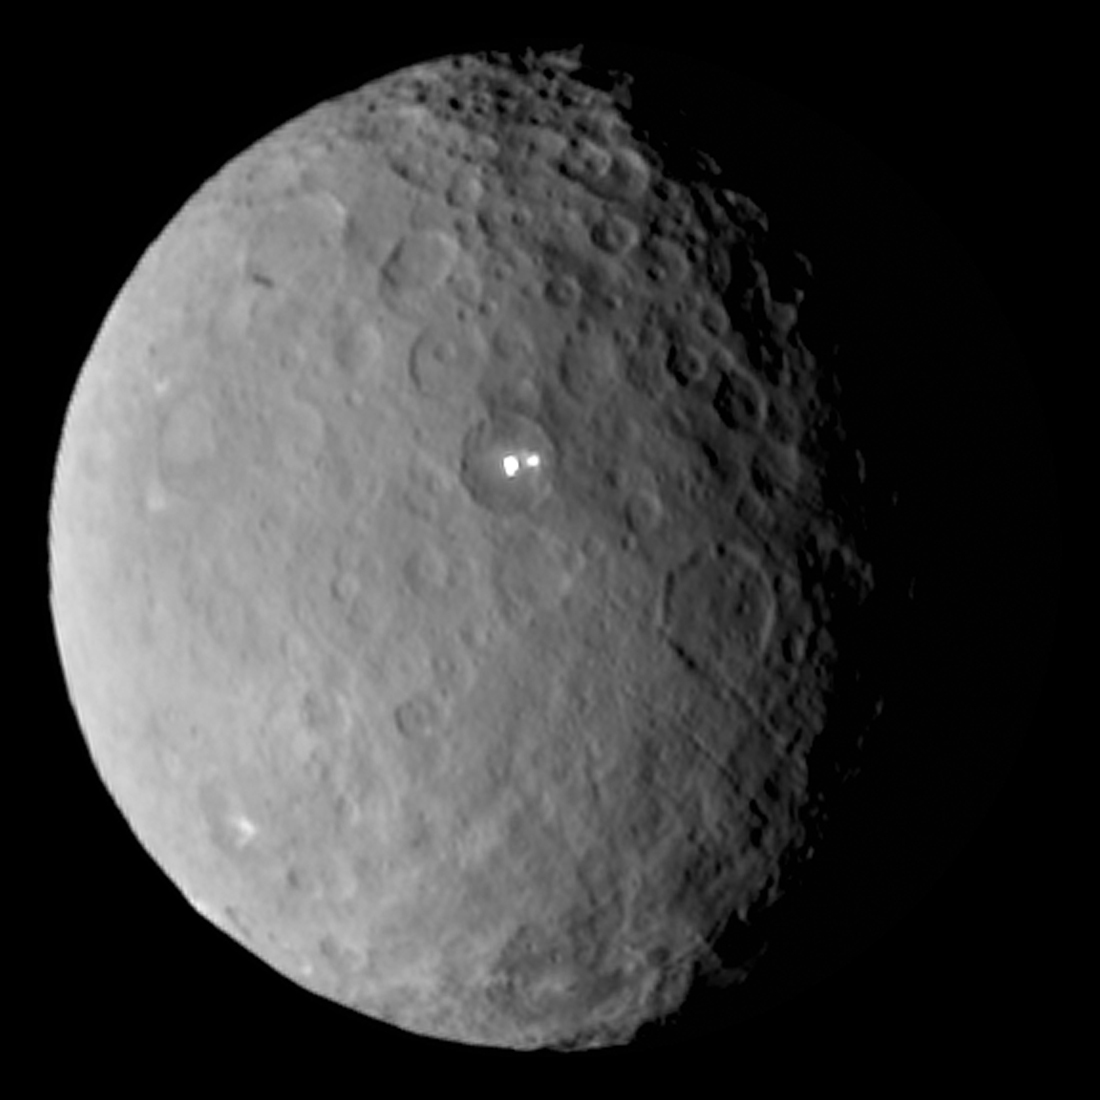 FilePIA18920 Ceres DwarfPlanet 20150219